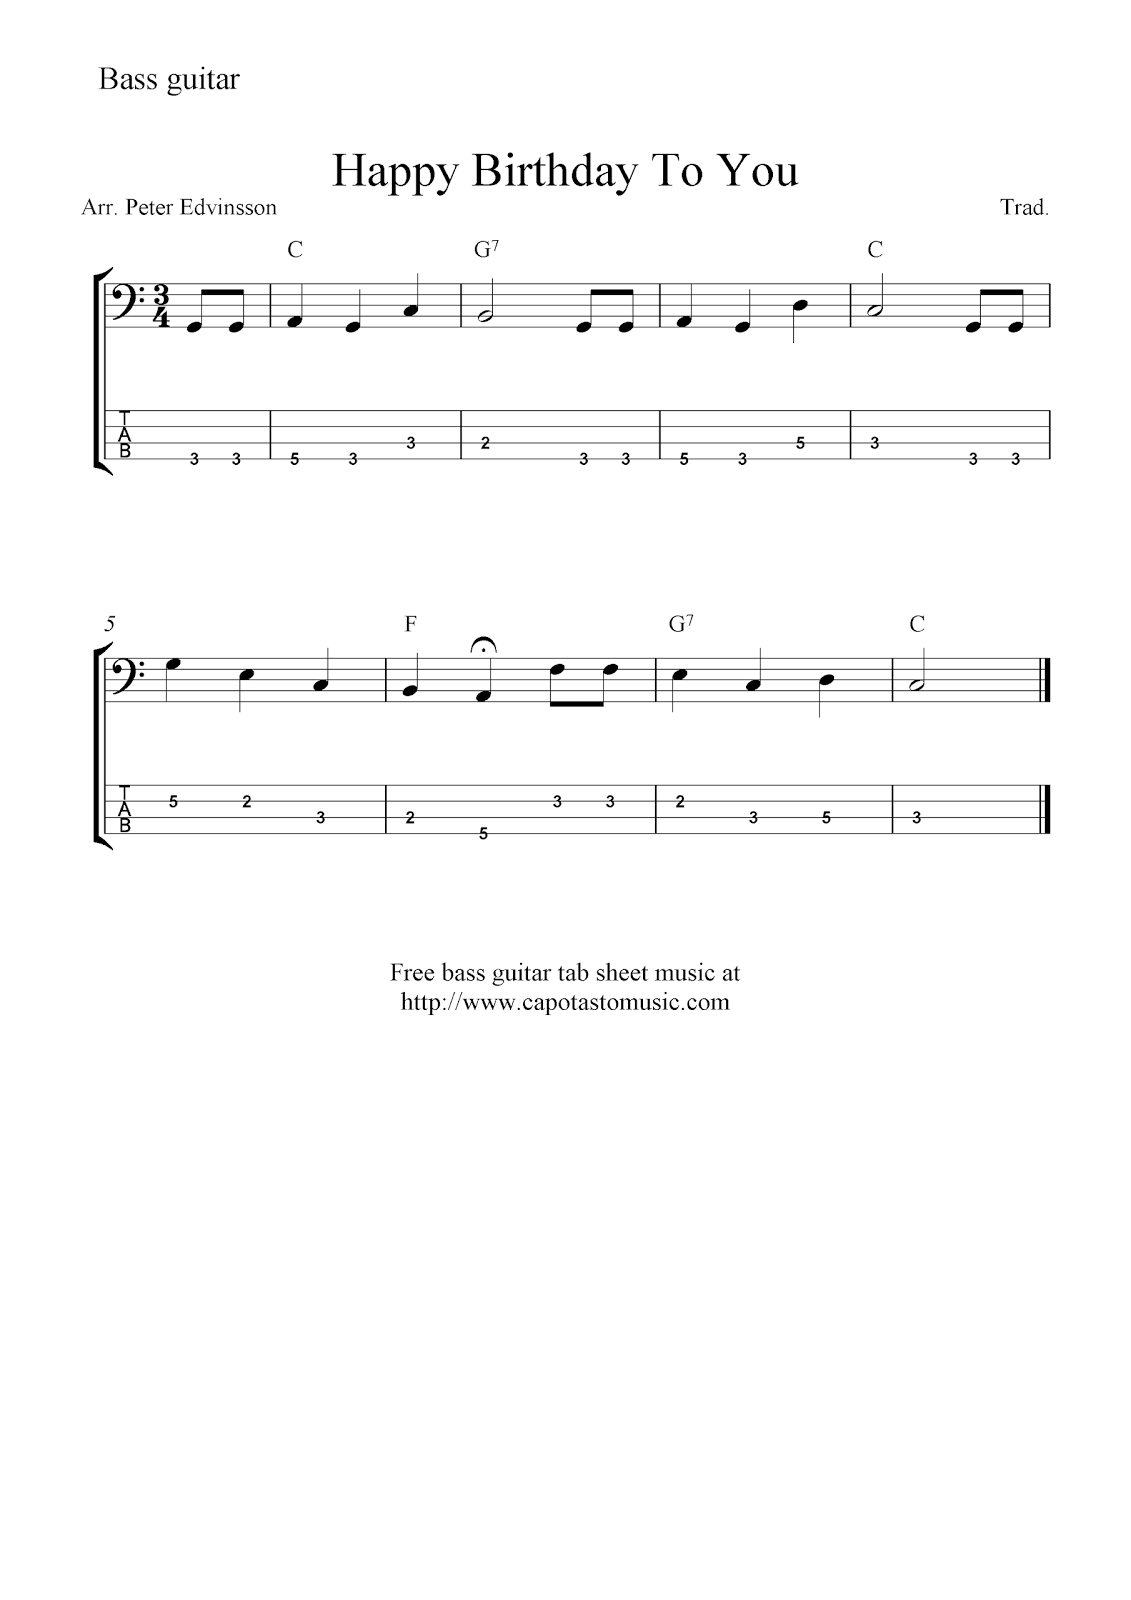 Free Bass Guitar Tab Sheet Music, Happy Birthday To You - Free Printable Guitar Music